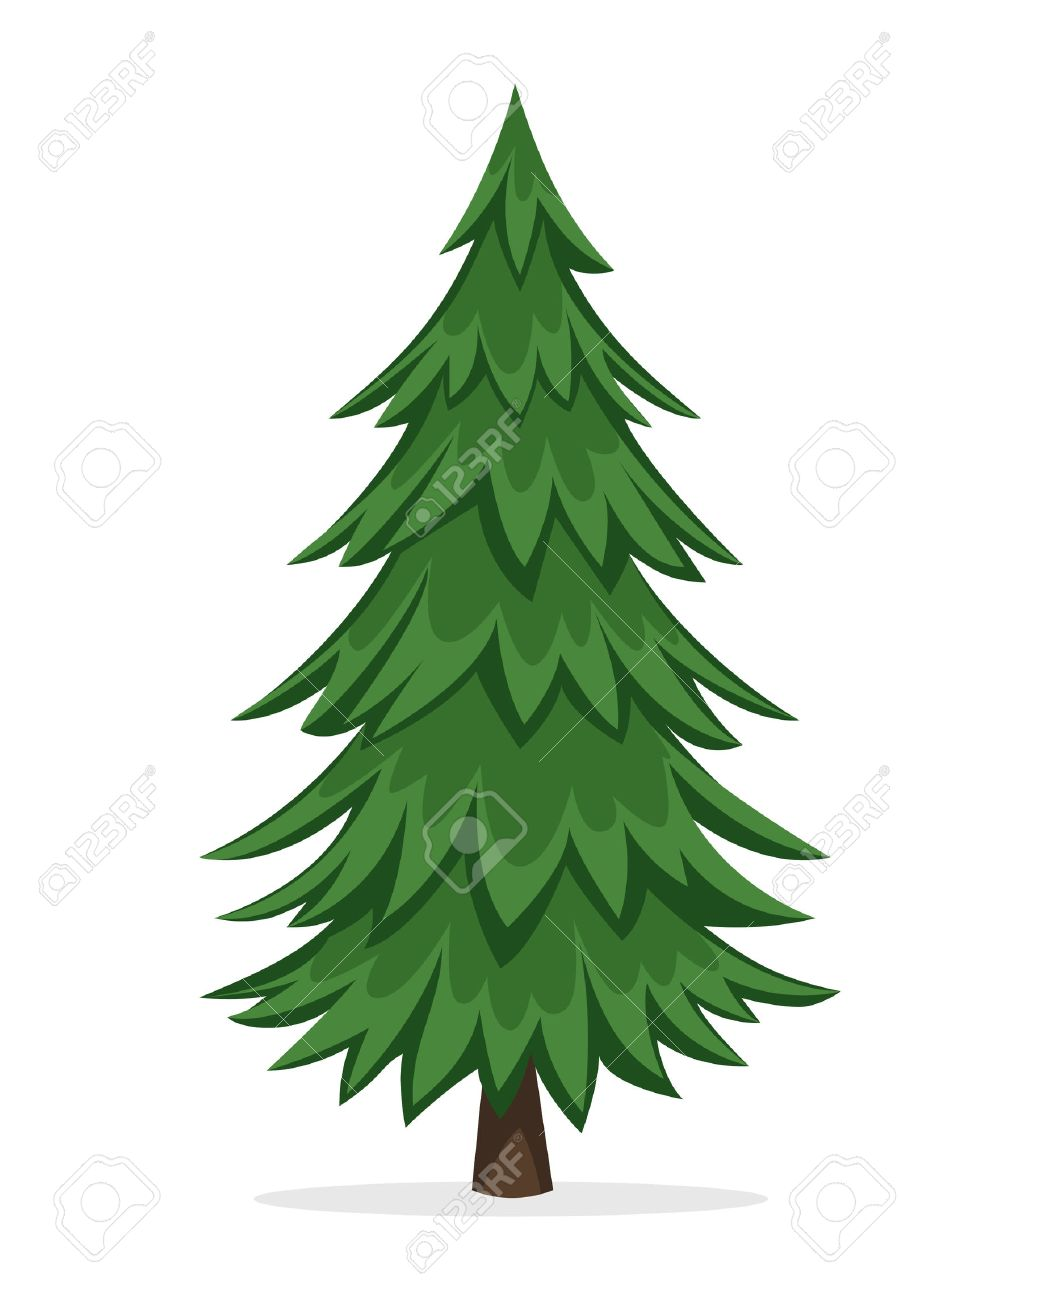 hight resolution of 1040x1300 cartoon pine trees free download clip art